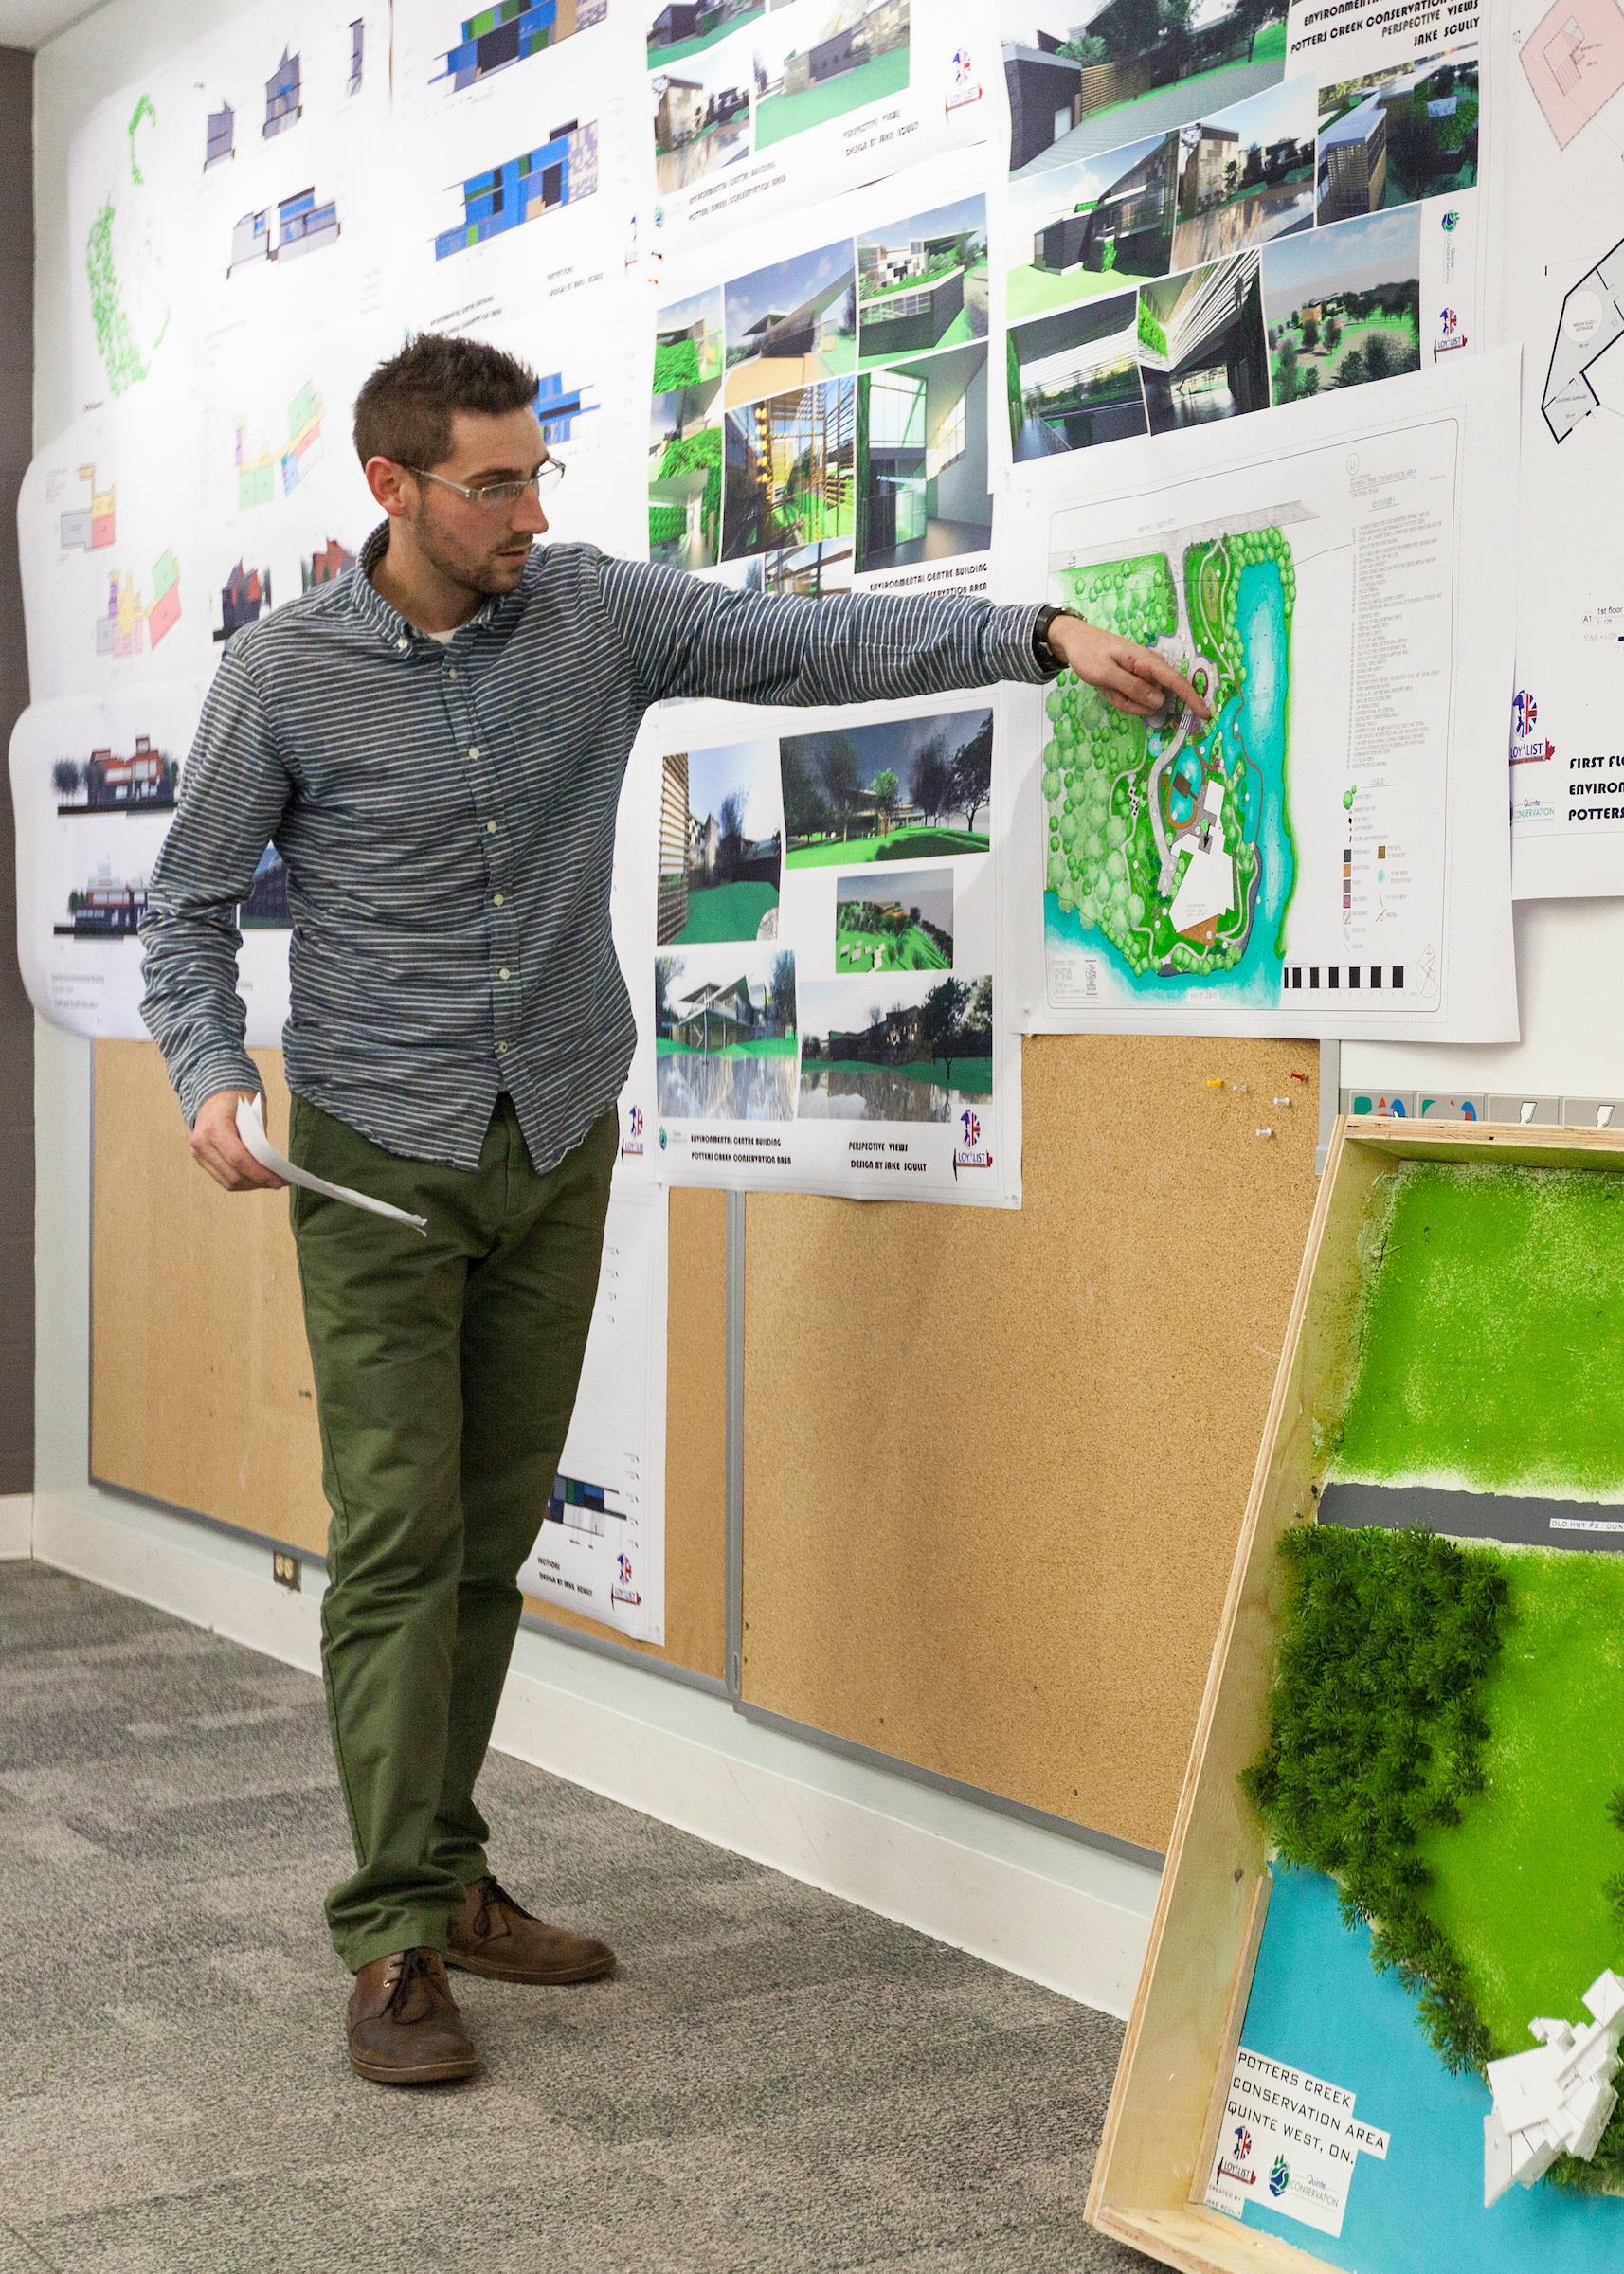 Architectural Technician student Jake Scully stands at the front of a classroom to presents a design study. He is pointing out features on architectural drawings.